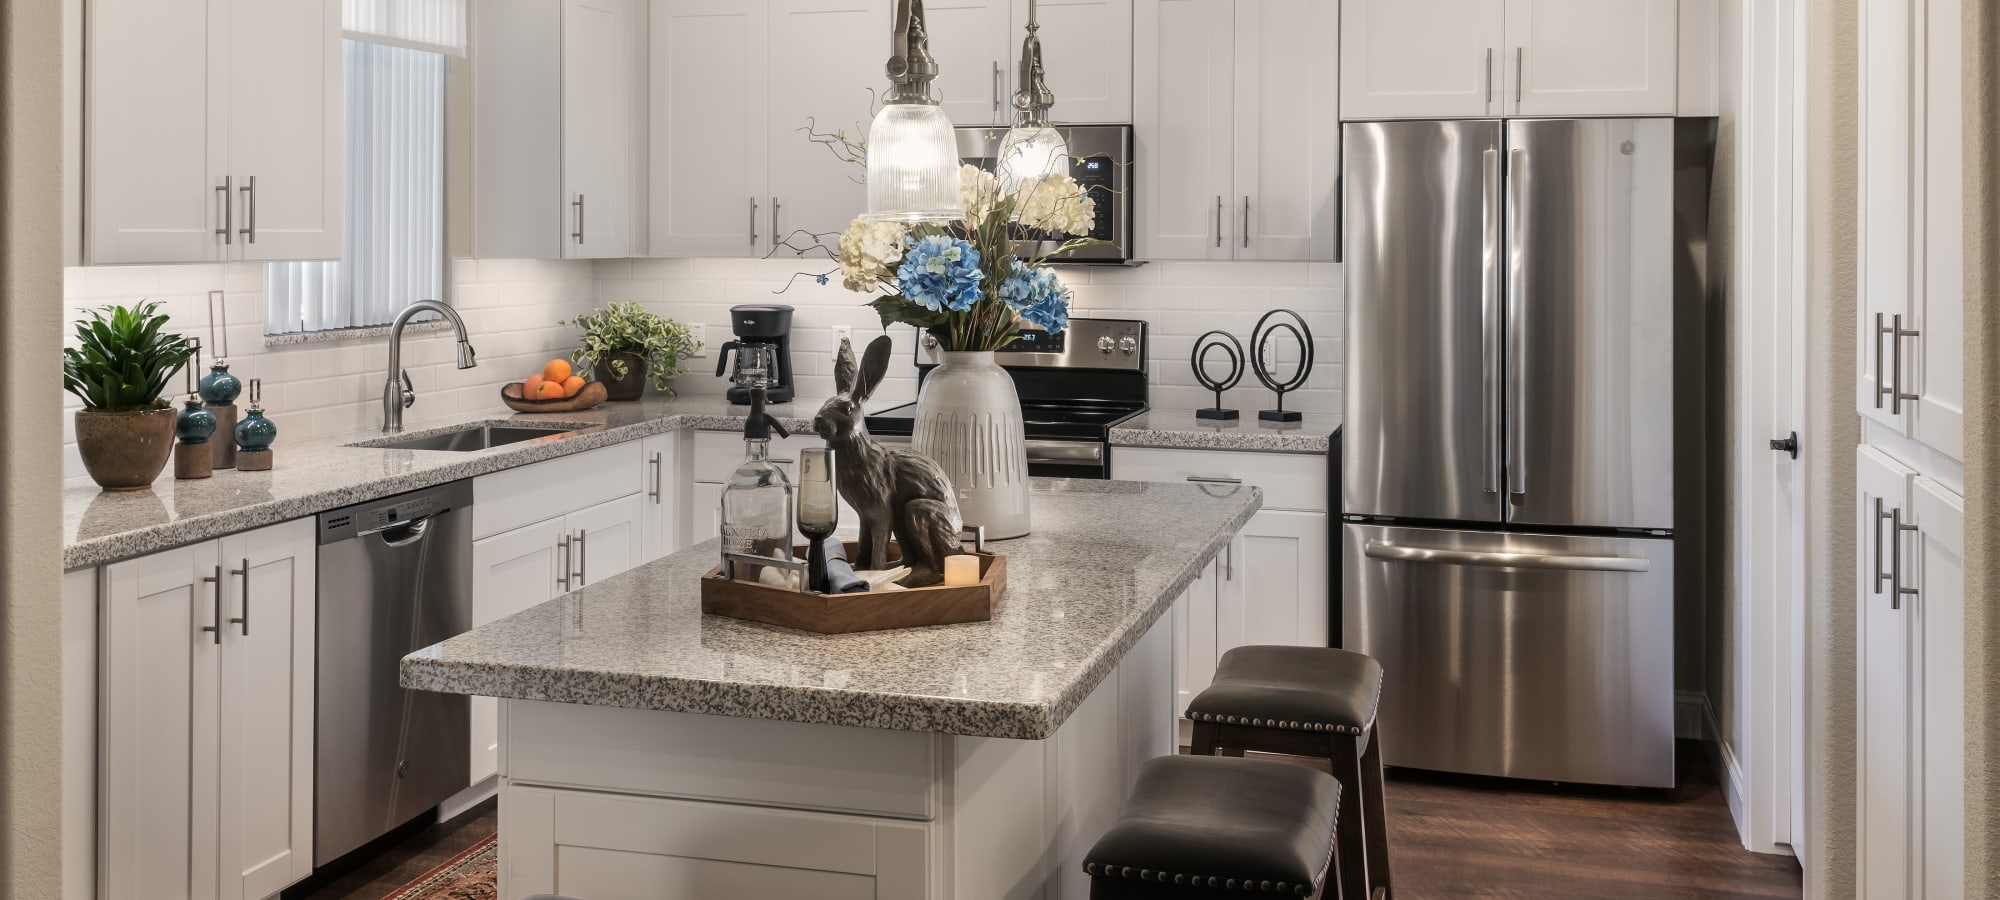 Kitchen with stainless steel appliances at San Artes in Scottsdale, Arizona